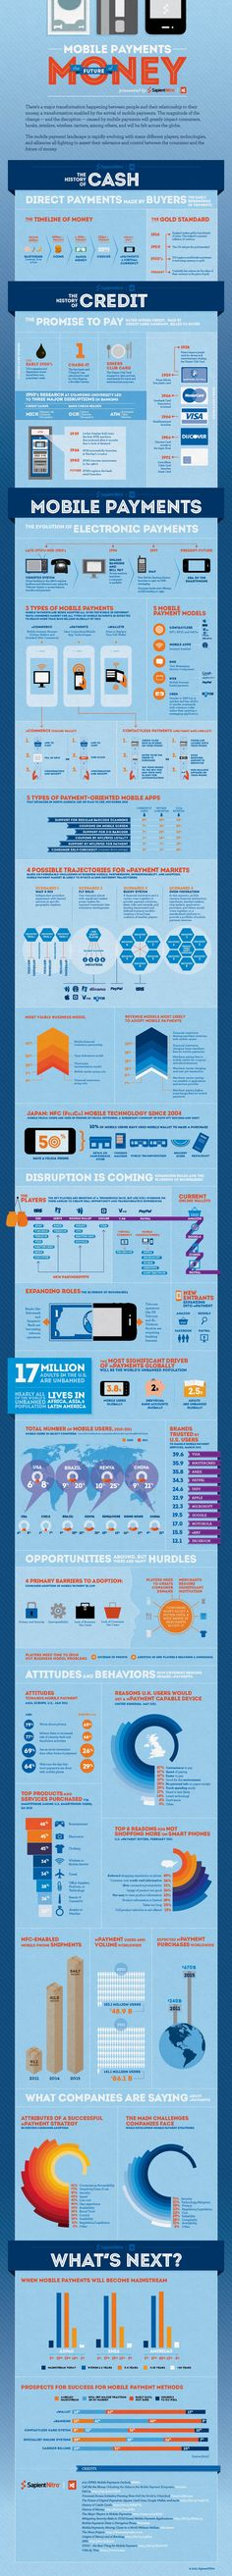 The Future of Money and Mobile Commerce